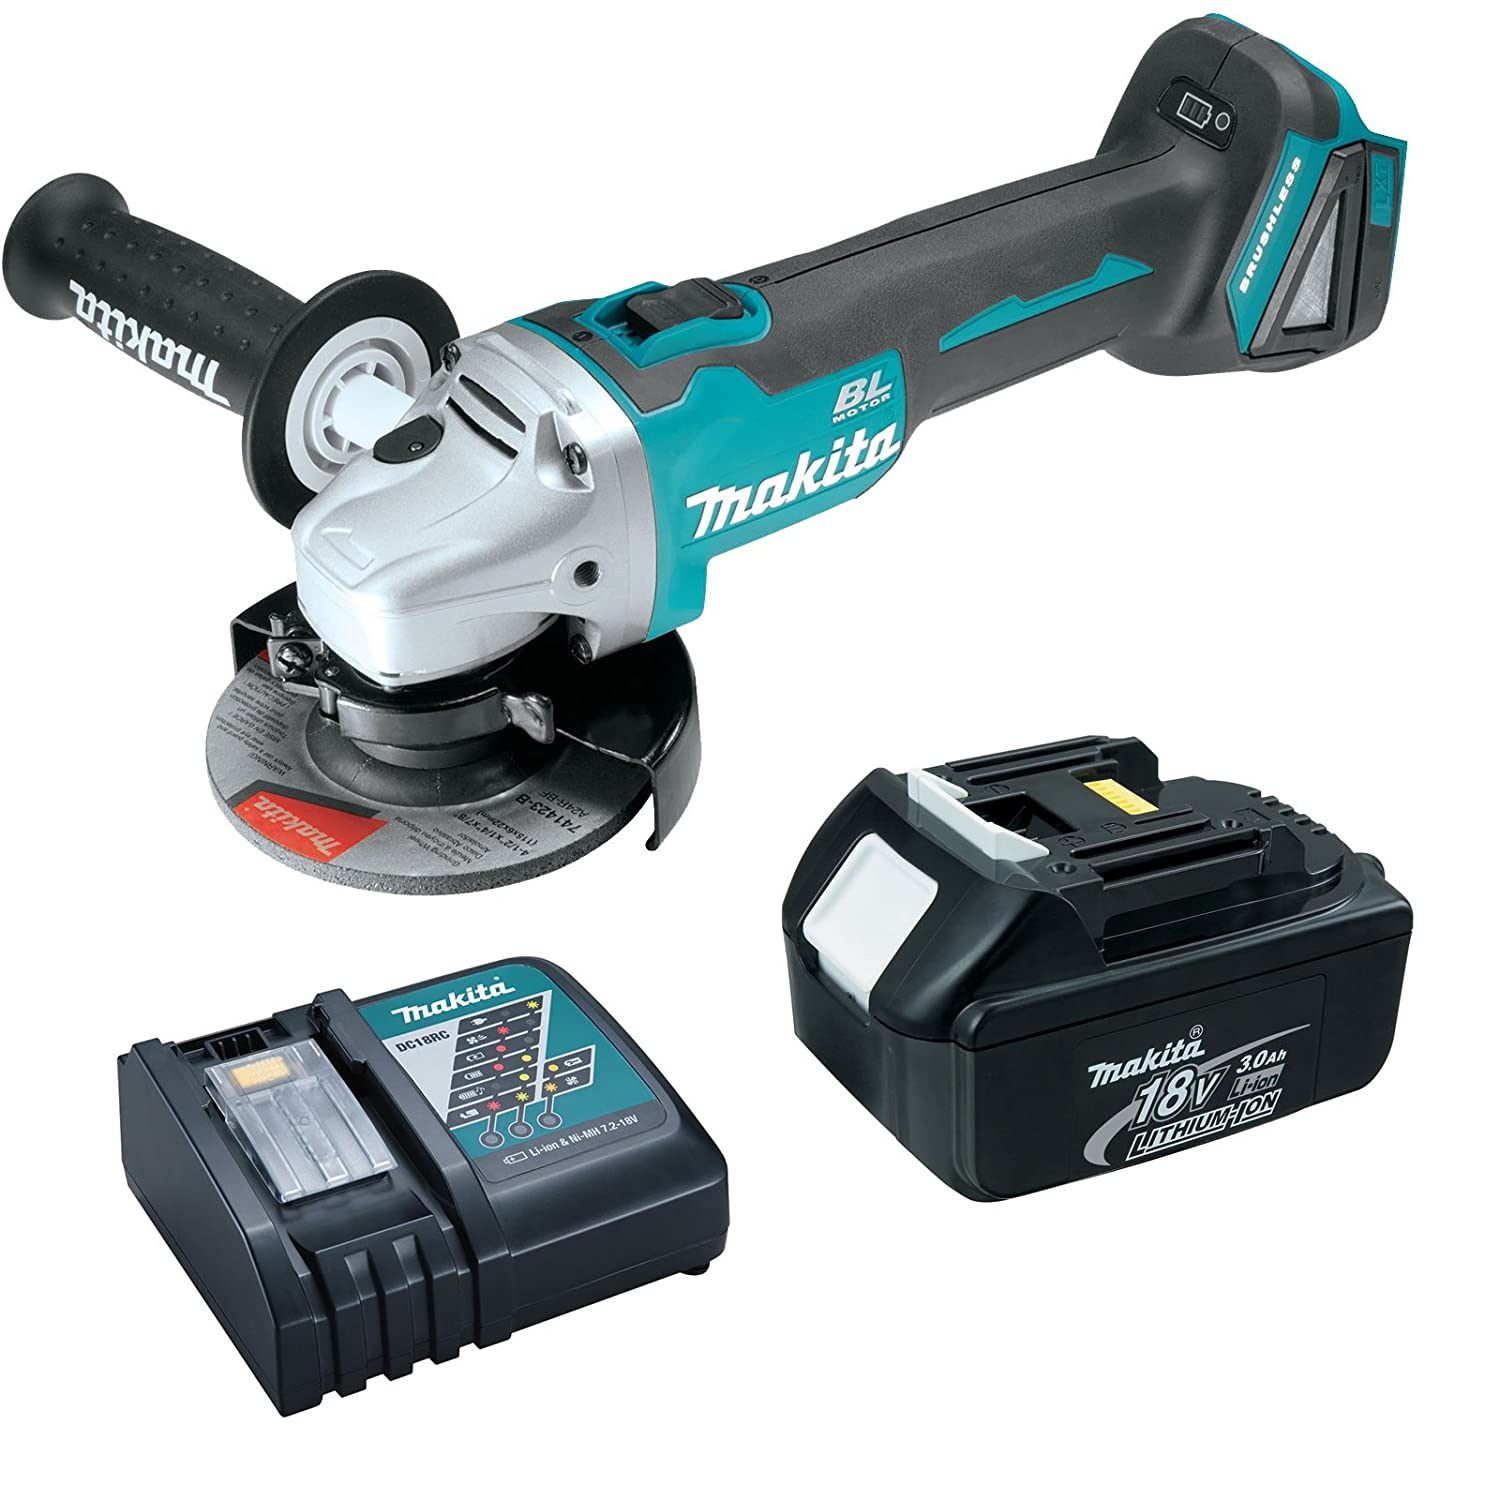 Makita XAG03Z 18V 4-1 2 Brushless Cut-Off Angle Grinder 3 Ah Battery, Charger